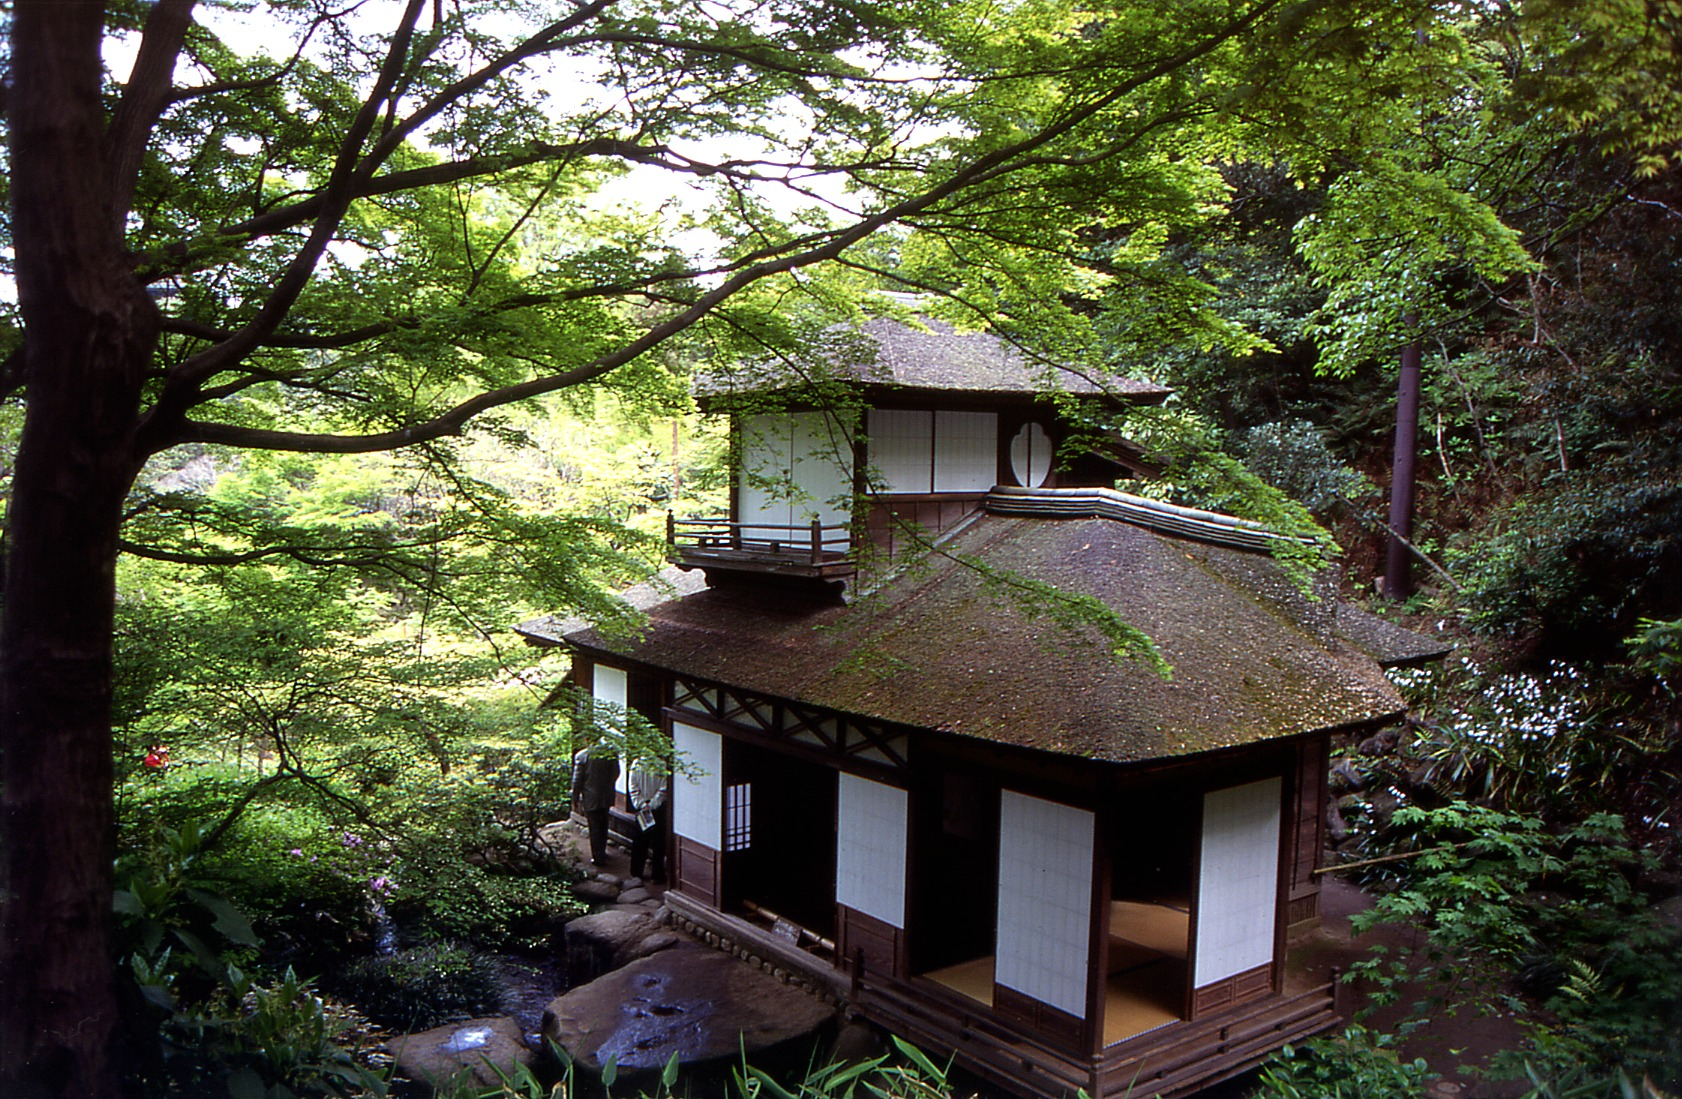 Historical buildings to open to the public in the spring (Shunsoro and Choshukaku, important cultural assets) 2020